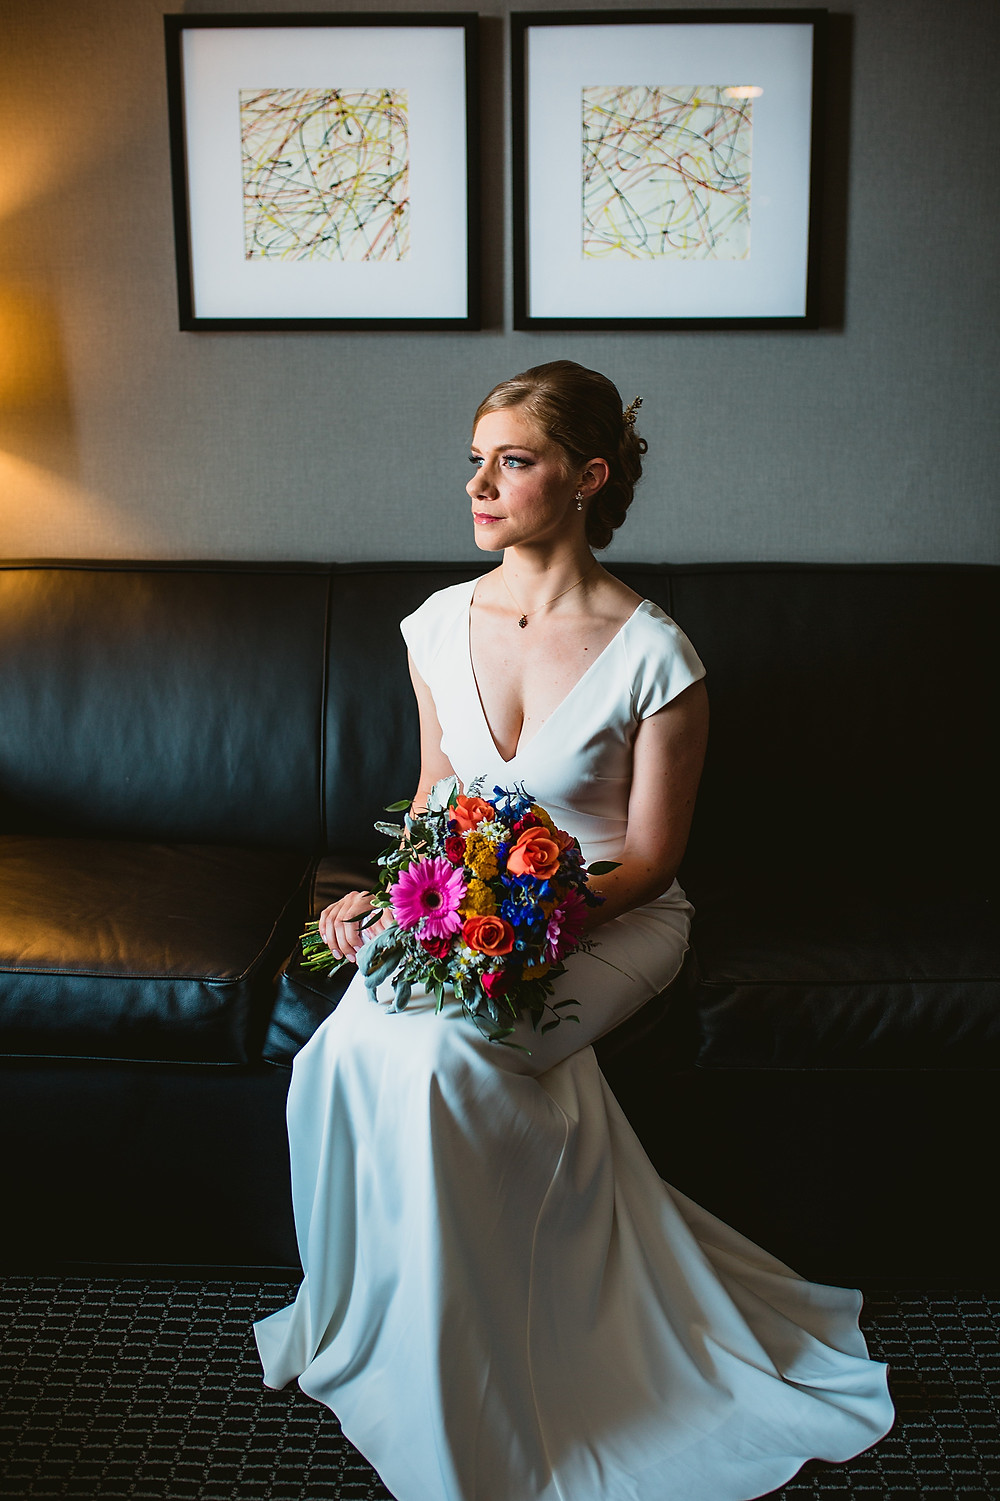 Chic Bridal Portrait at Lord Baltimore Hotel